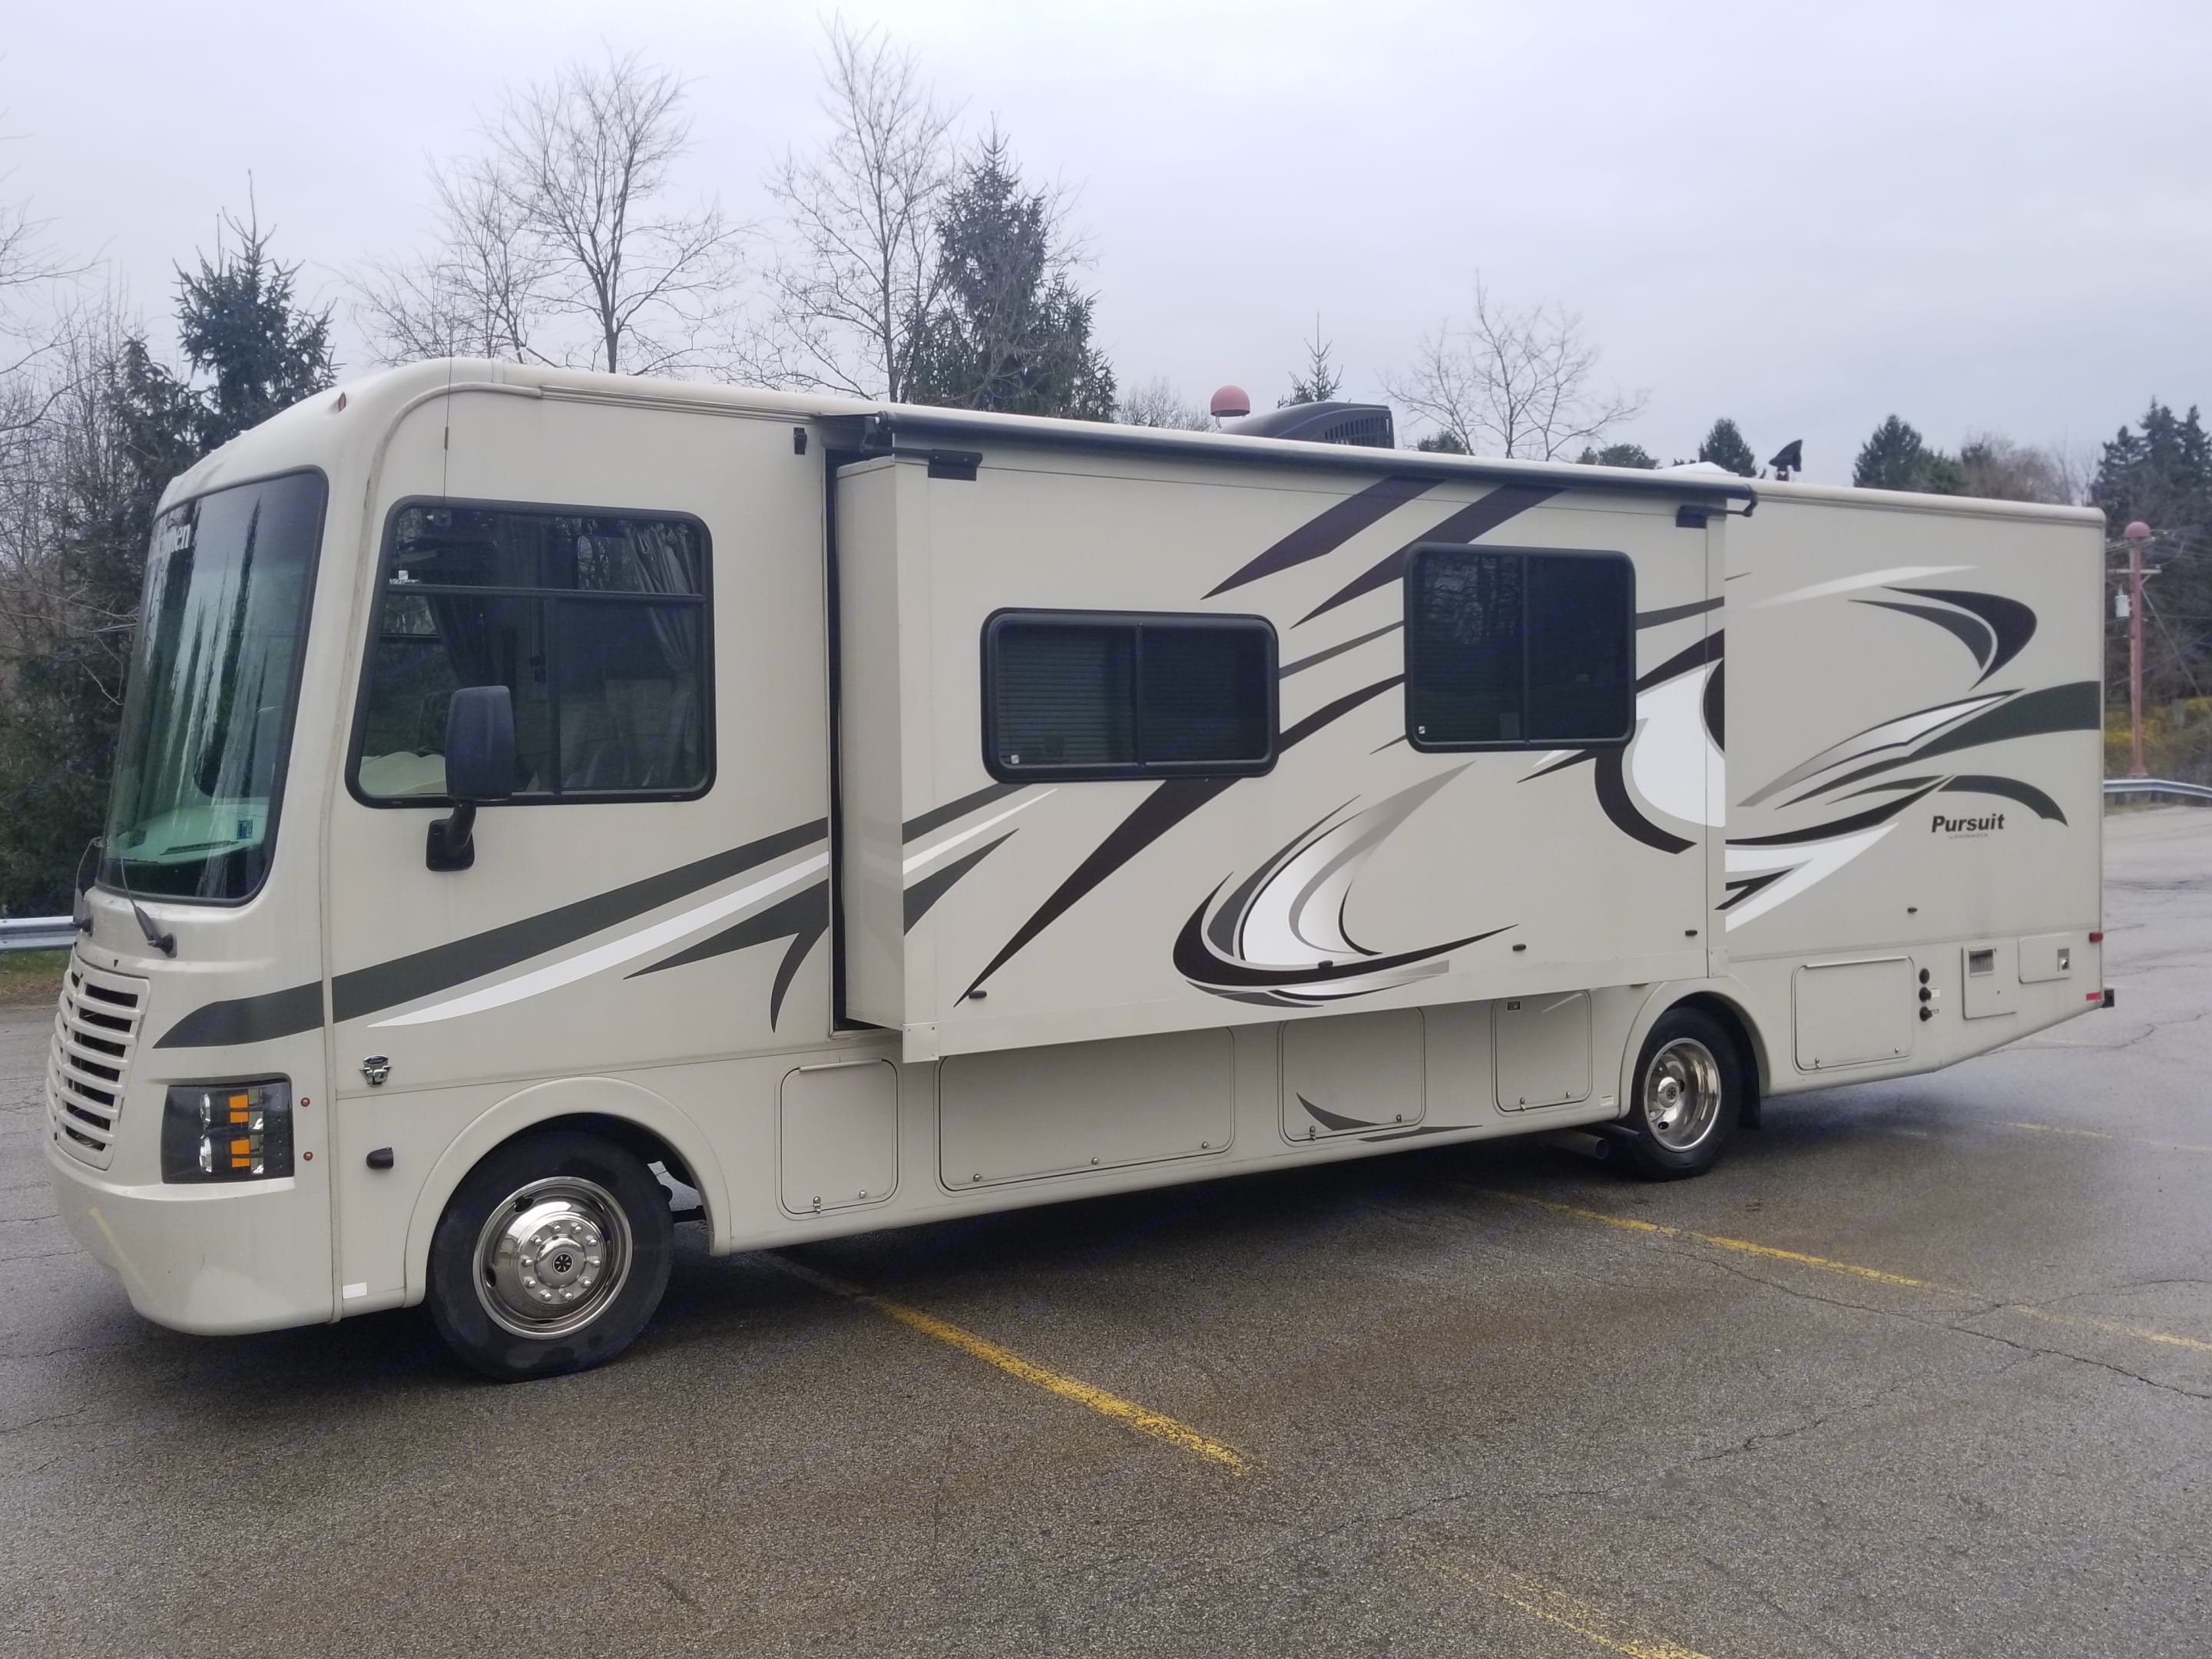 Driver's side exterior view with slide out extended. Coachmen Pursuit 2014